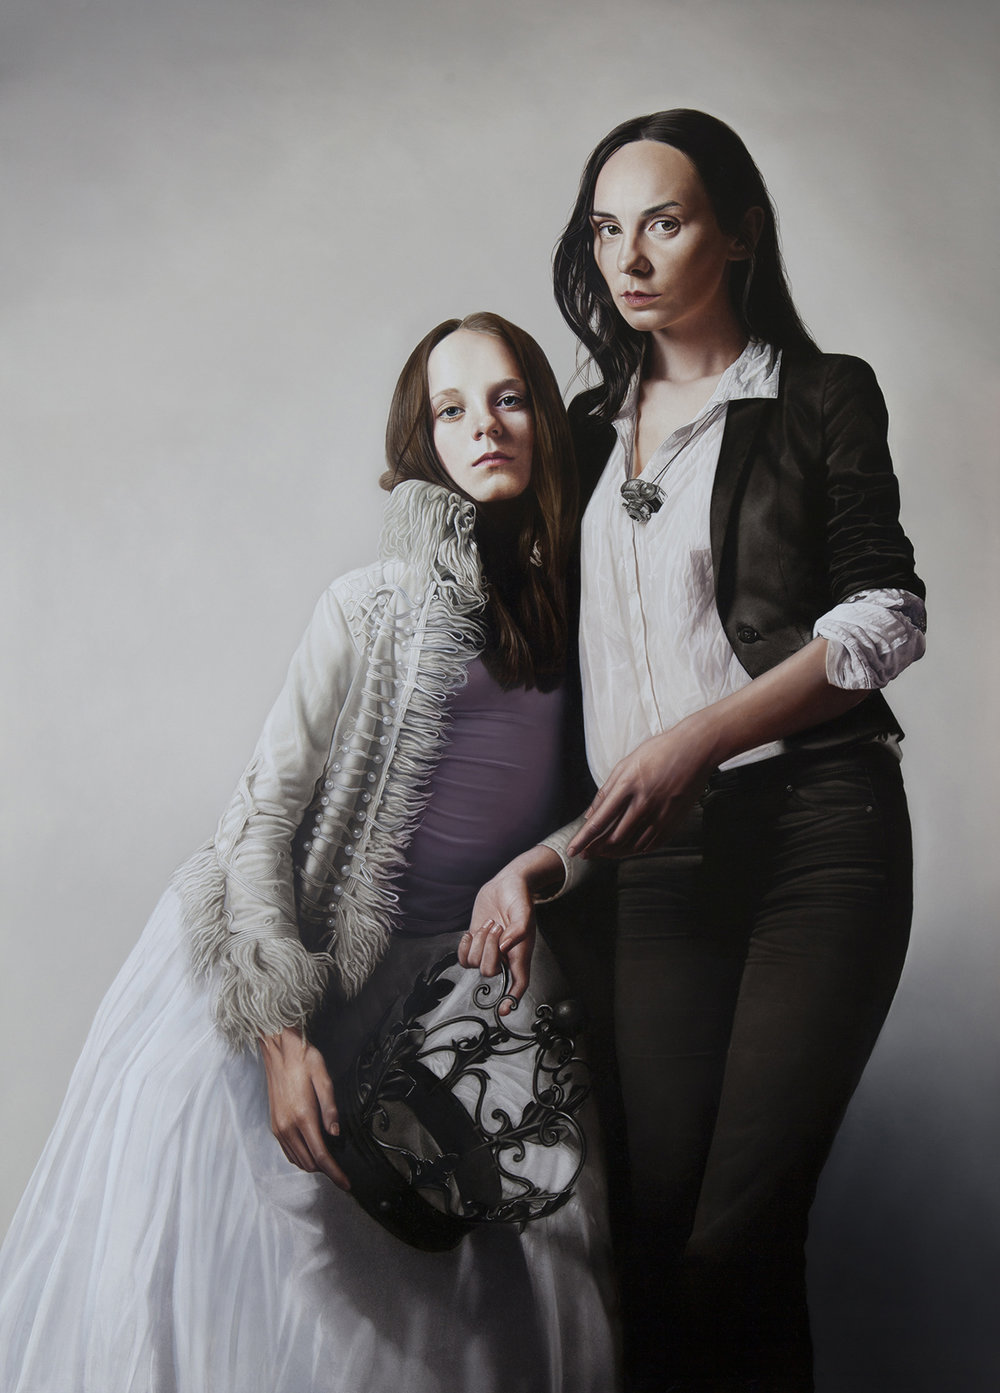 Legacy (Portrait of photographer Justyna Neyrng and daughter Nell) 50 x 36 inches Oil on Aluminium Panel  N/A